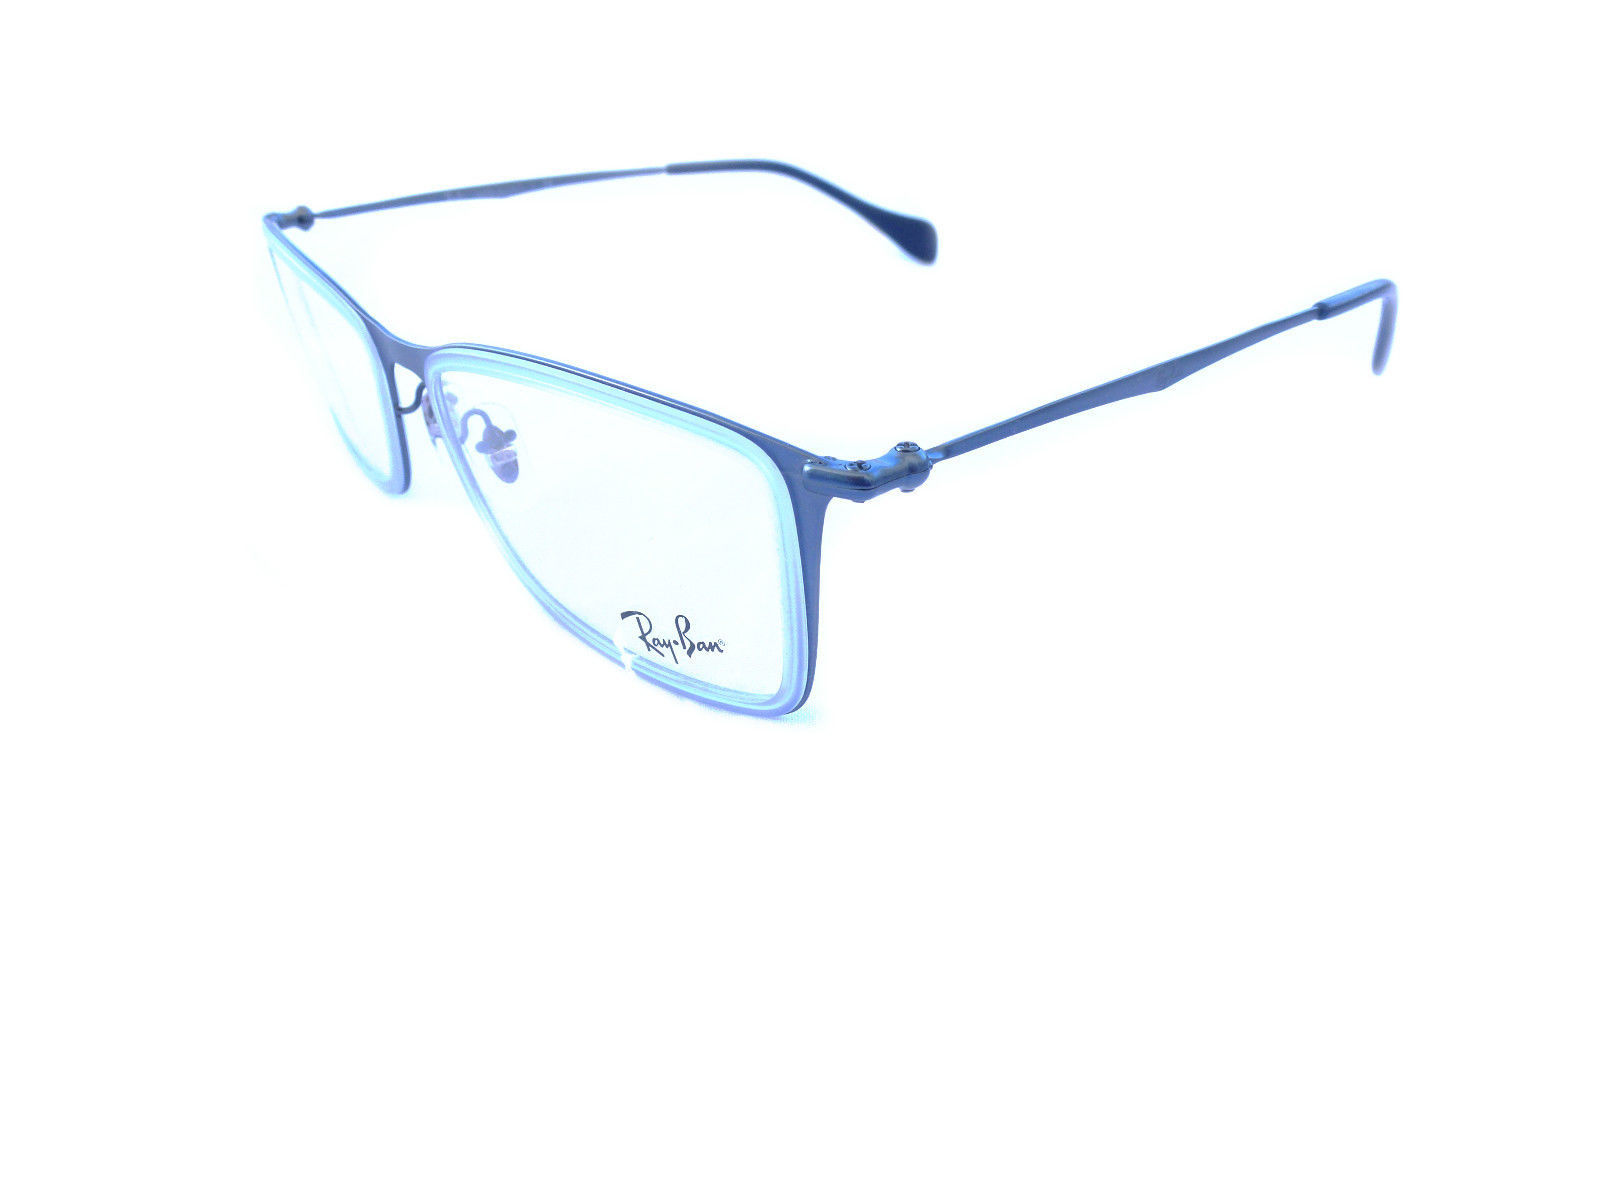 where to buy ban reading glasses